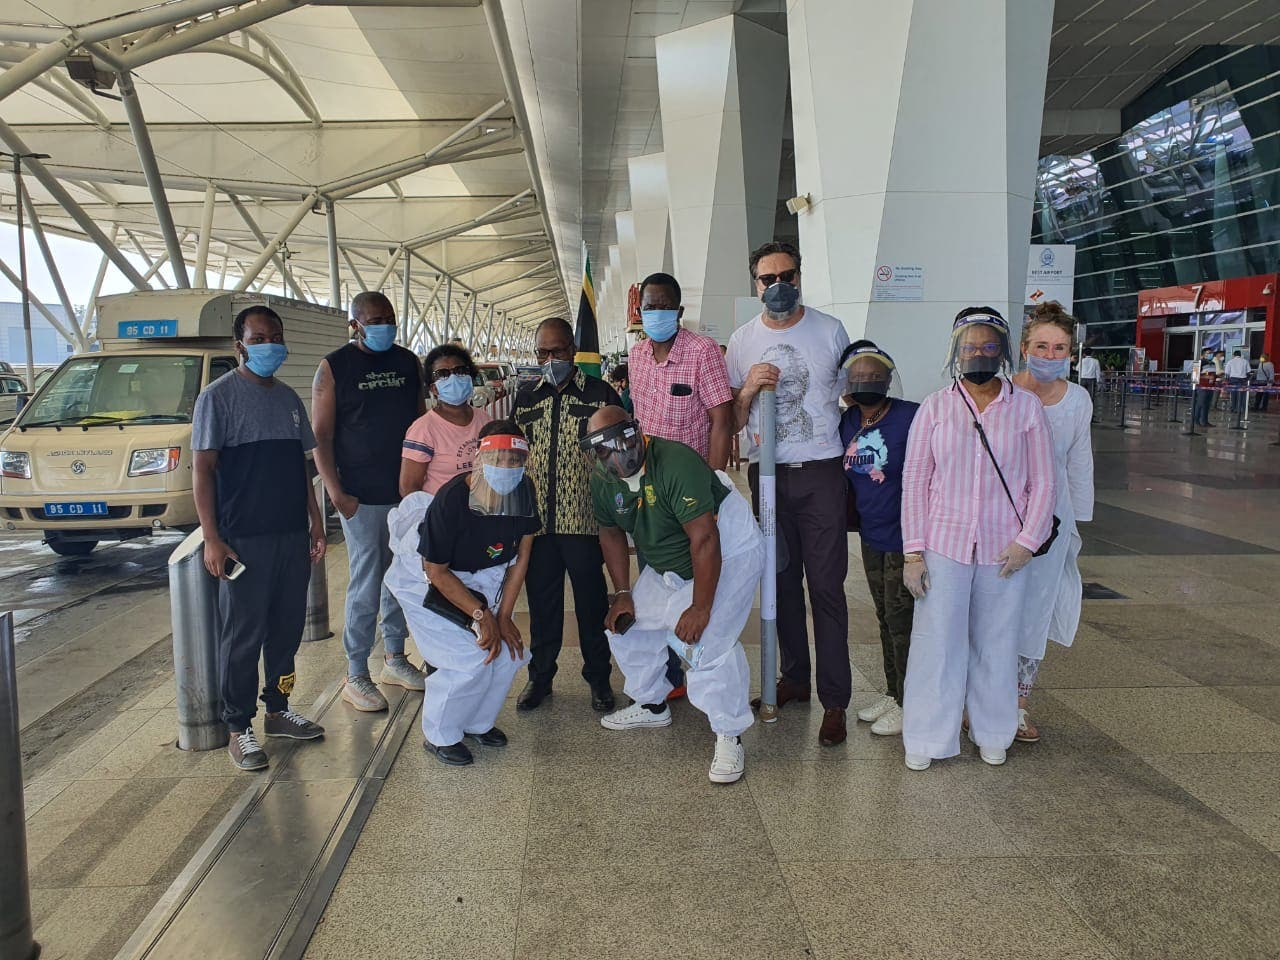 Members of the South African Commission in Delhi, pose for a photo following the successful repatriation of citizens (in joint effort with the Consulate in Mumbai).